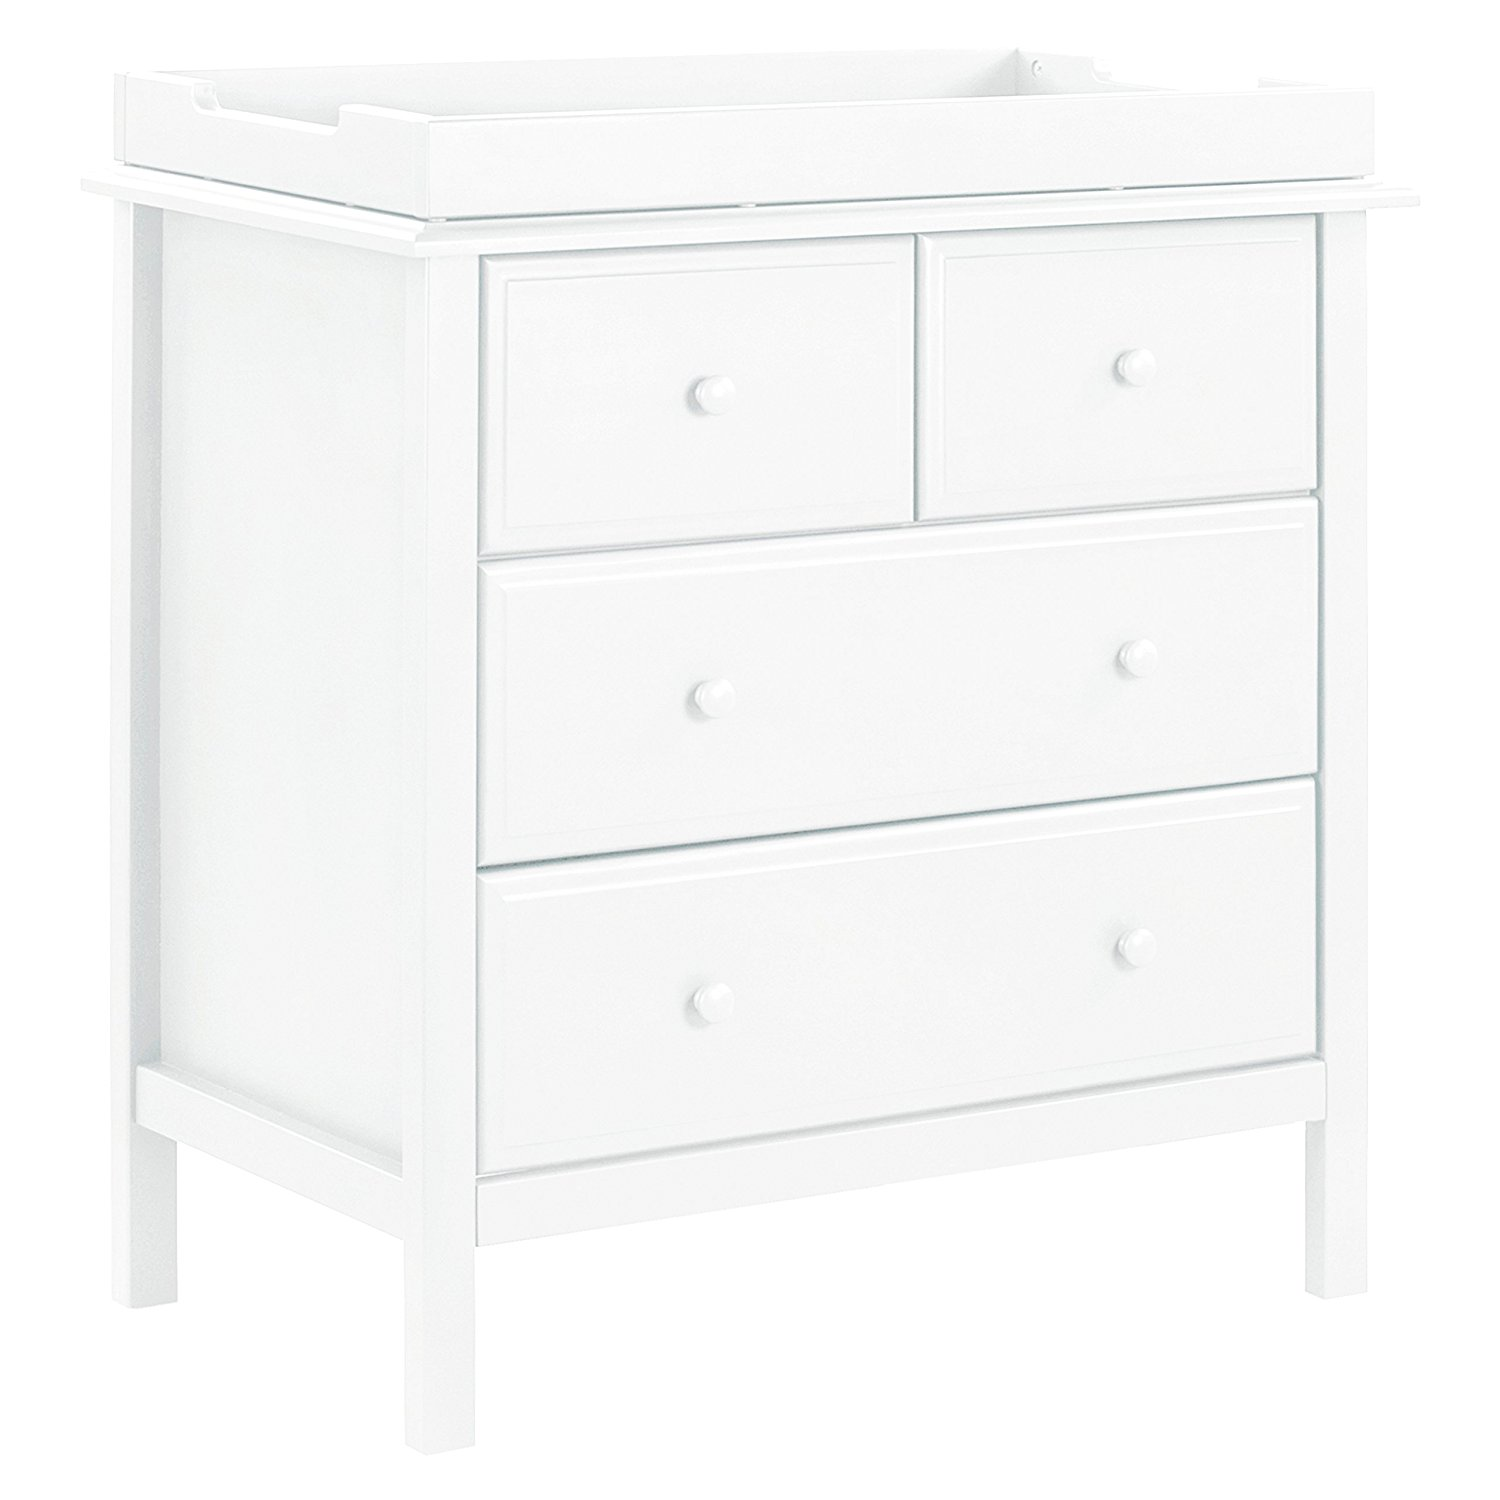 davinci autumn 4 drawer dresser, best changing tables with drawers, changing tables with drawers, white changing table, modern changing table, stylish changing table